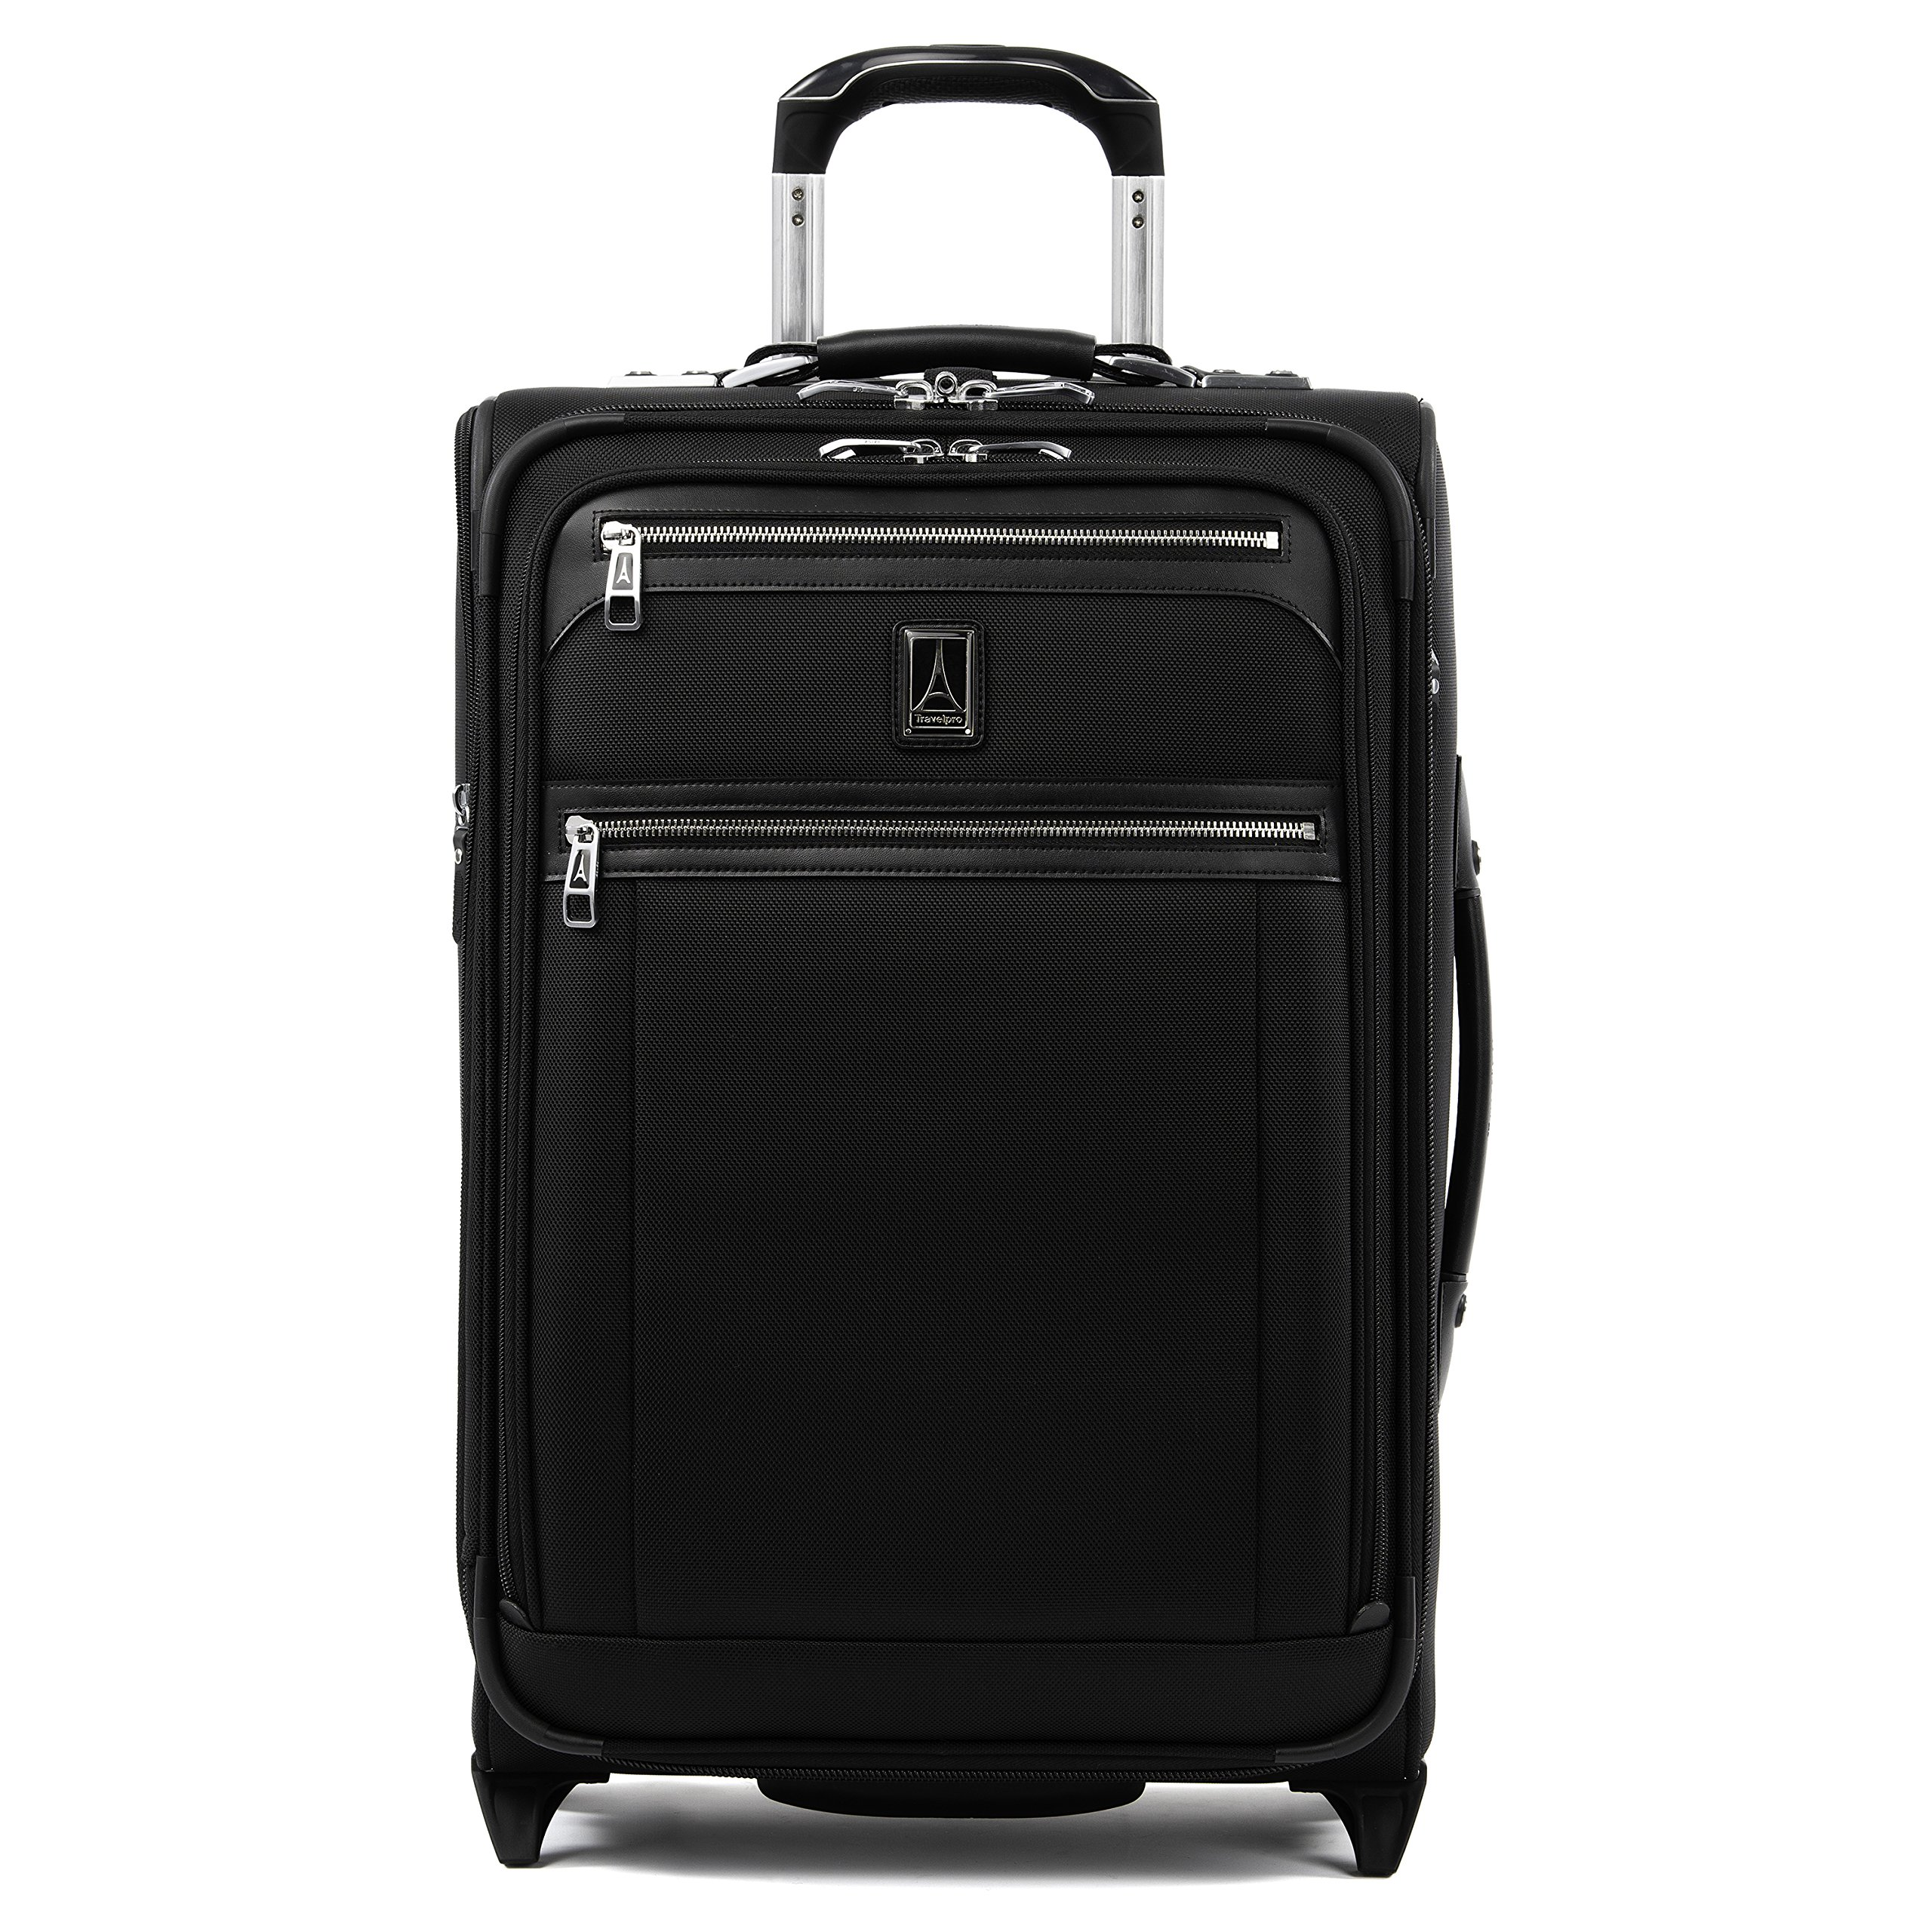 Travelpro Luggage Platinum Elite 22'' Carry-on Expandable Rollaboard w/USB Port, Shadow Black